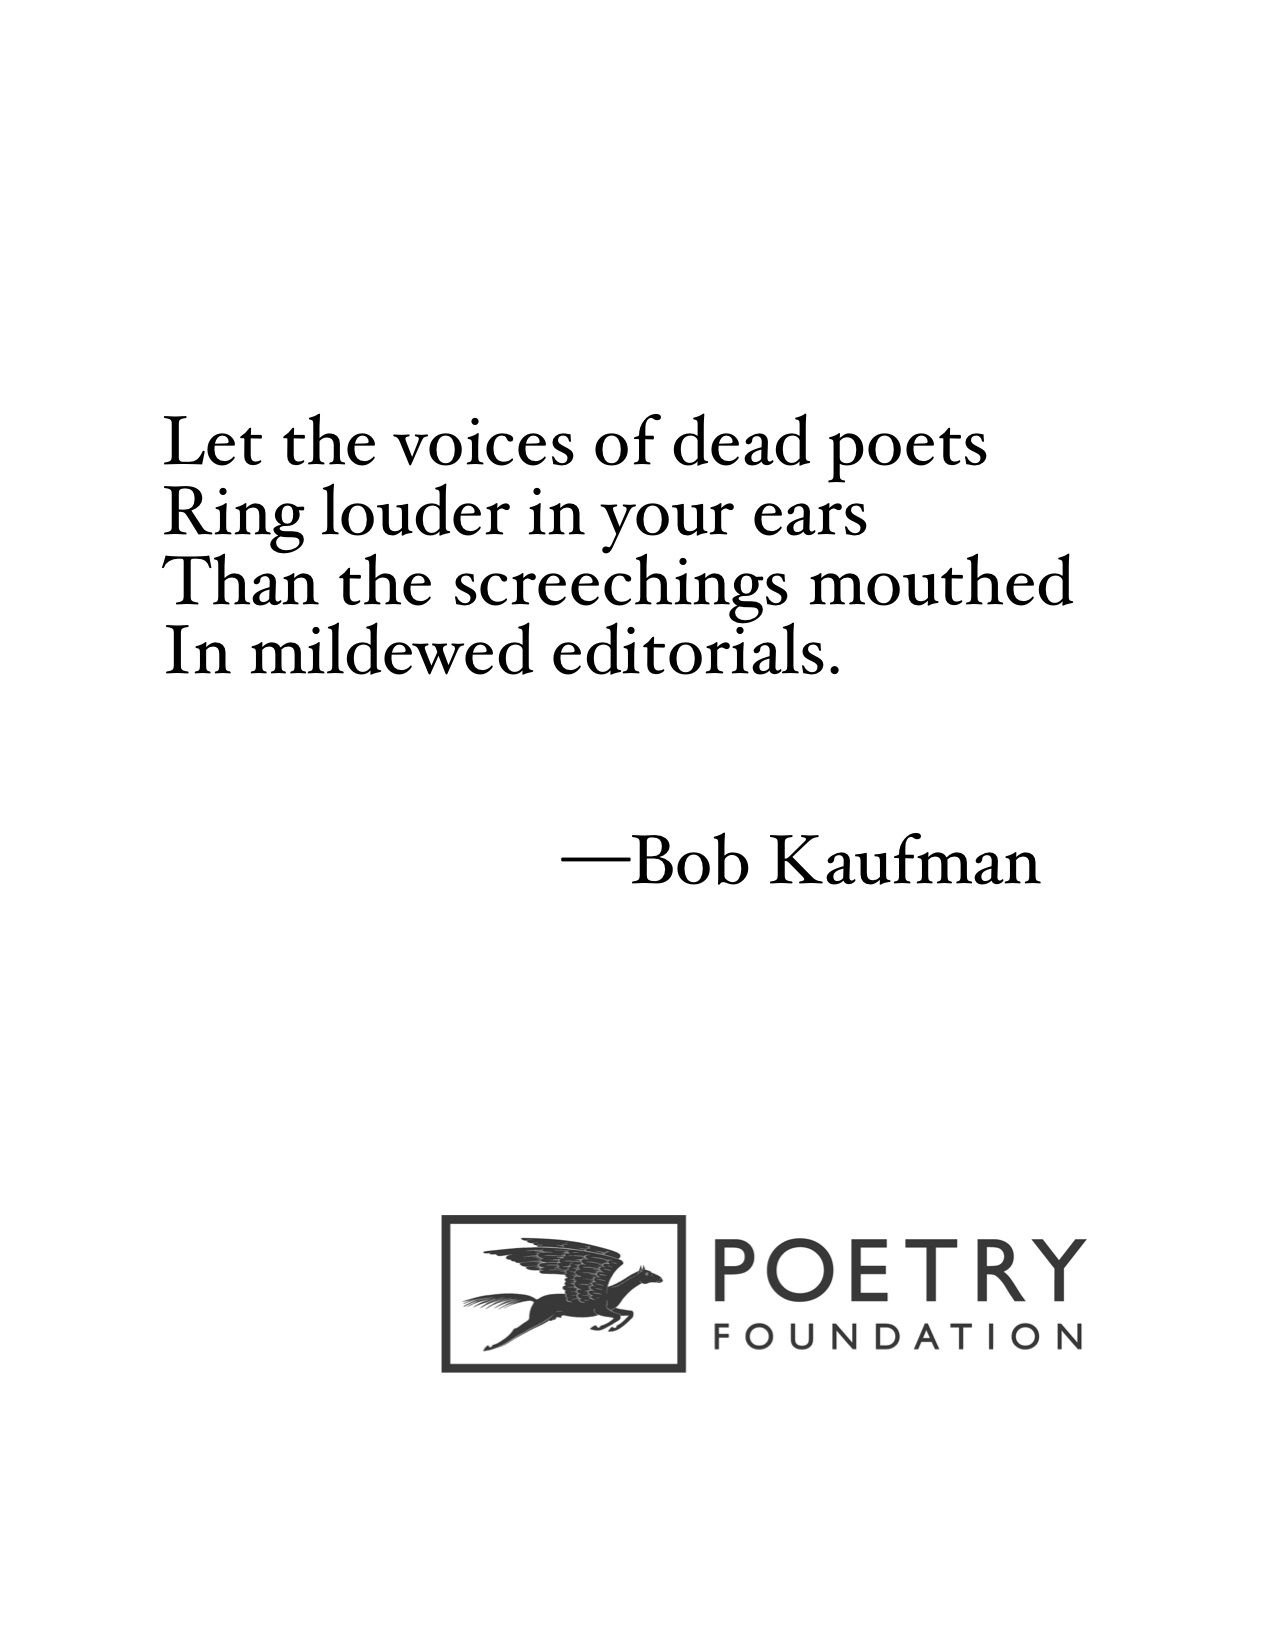 letterpress poetry print the road not taken by robert frost believe believe by bob kaufman let the voices of dead poets